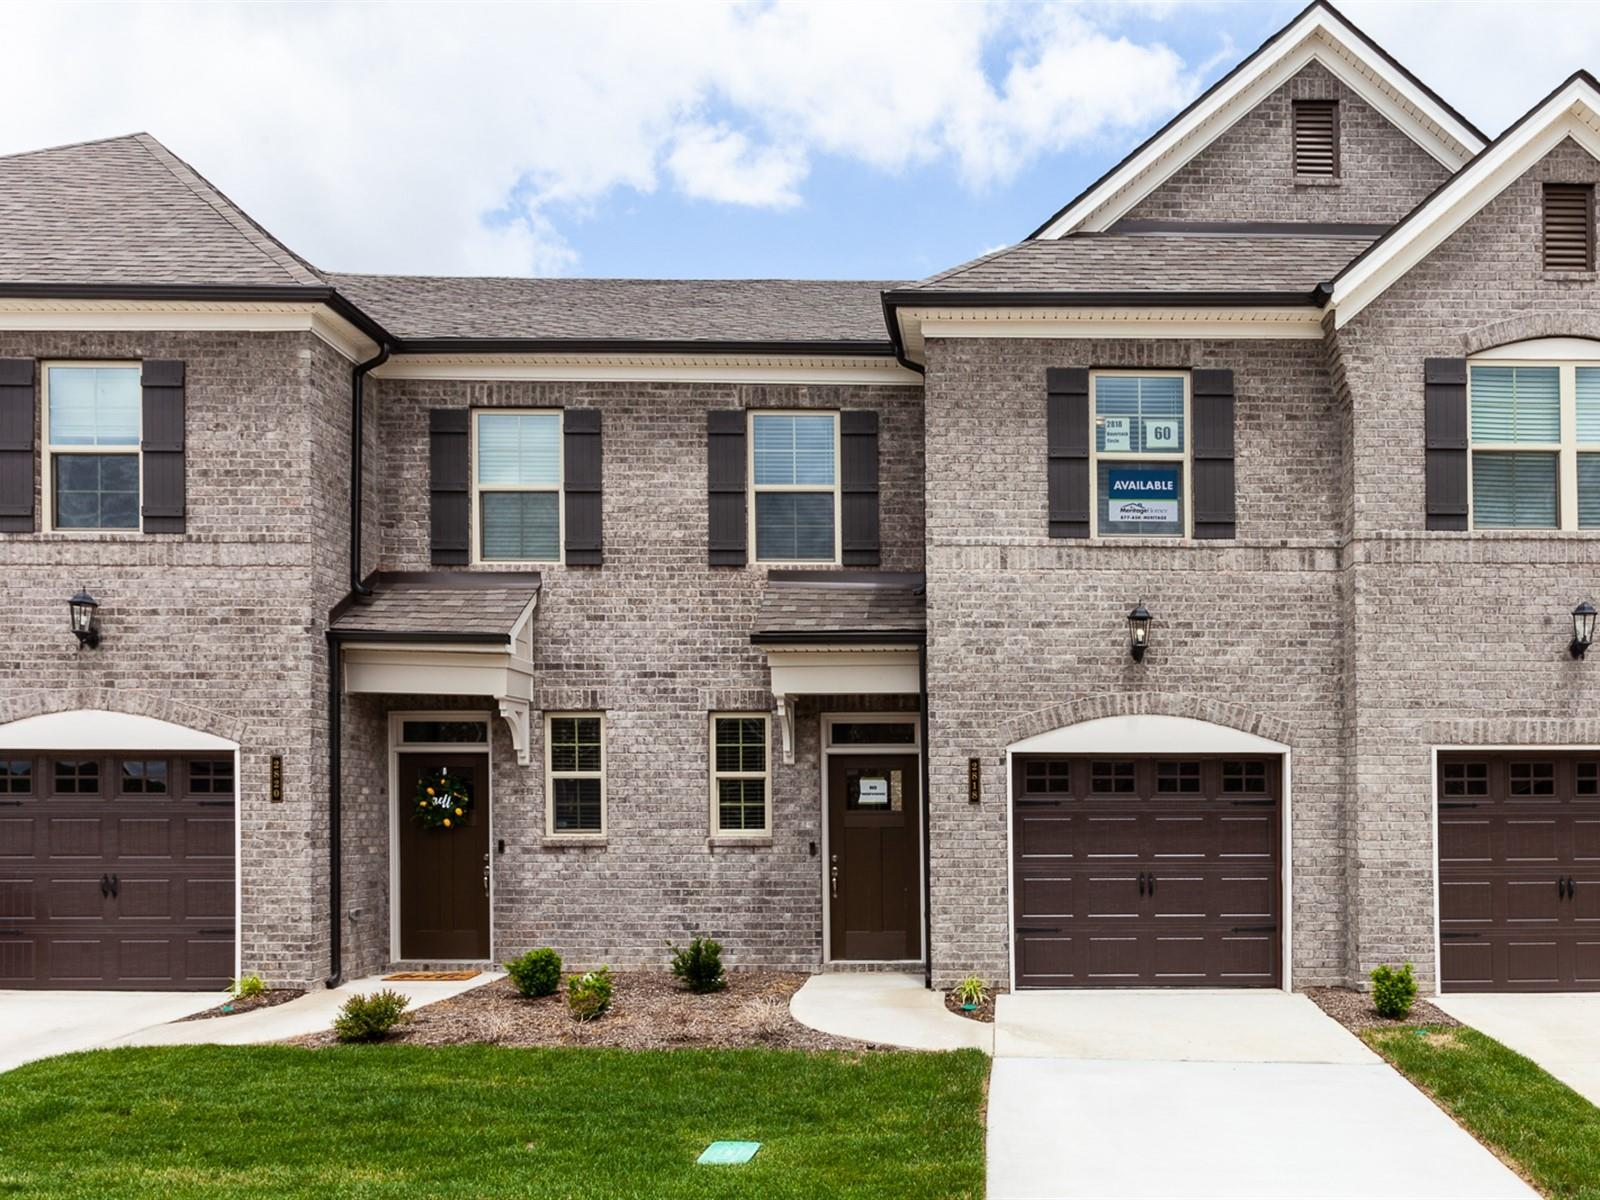 2845 Haversack Cir #37, Murfreesboro in Rutherford County County, TN 37128 Home for Sale